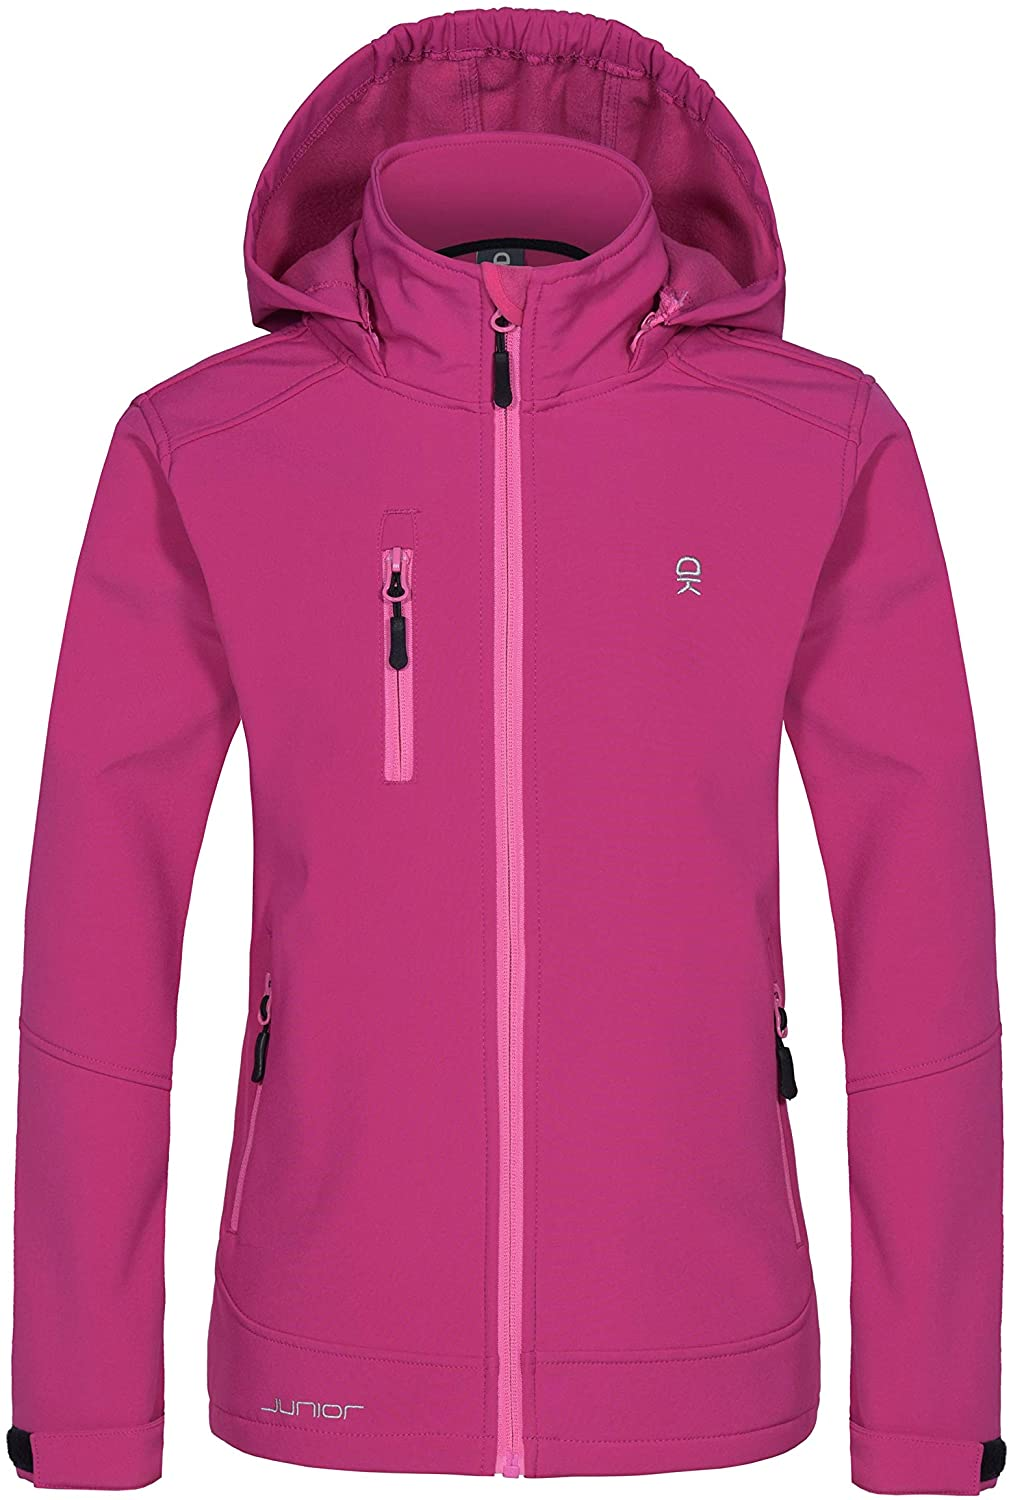 Little Donkey Andy Girls' Youth Softshell Jacket with Removable Hood, Fleece Lined and Water Repellent